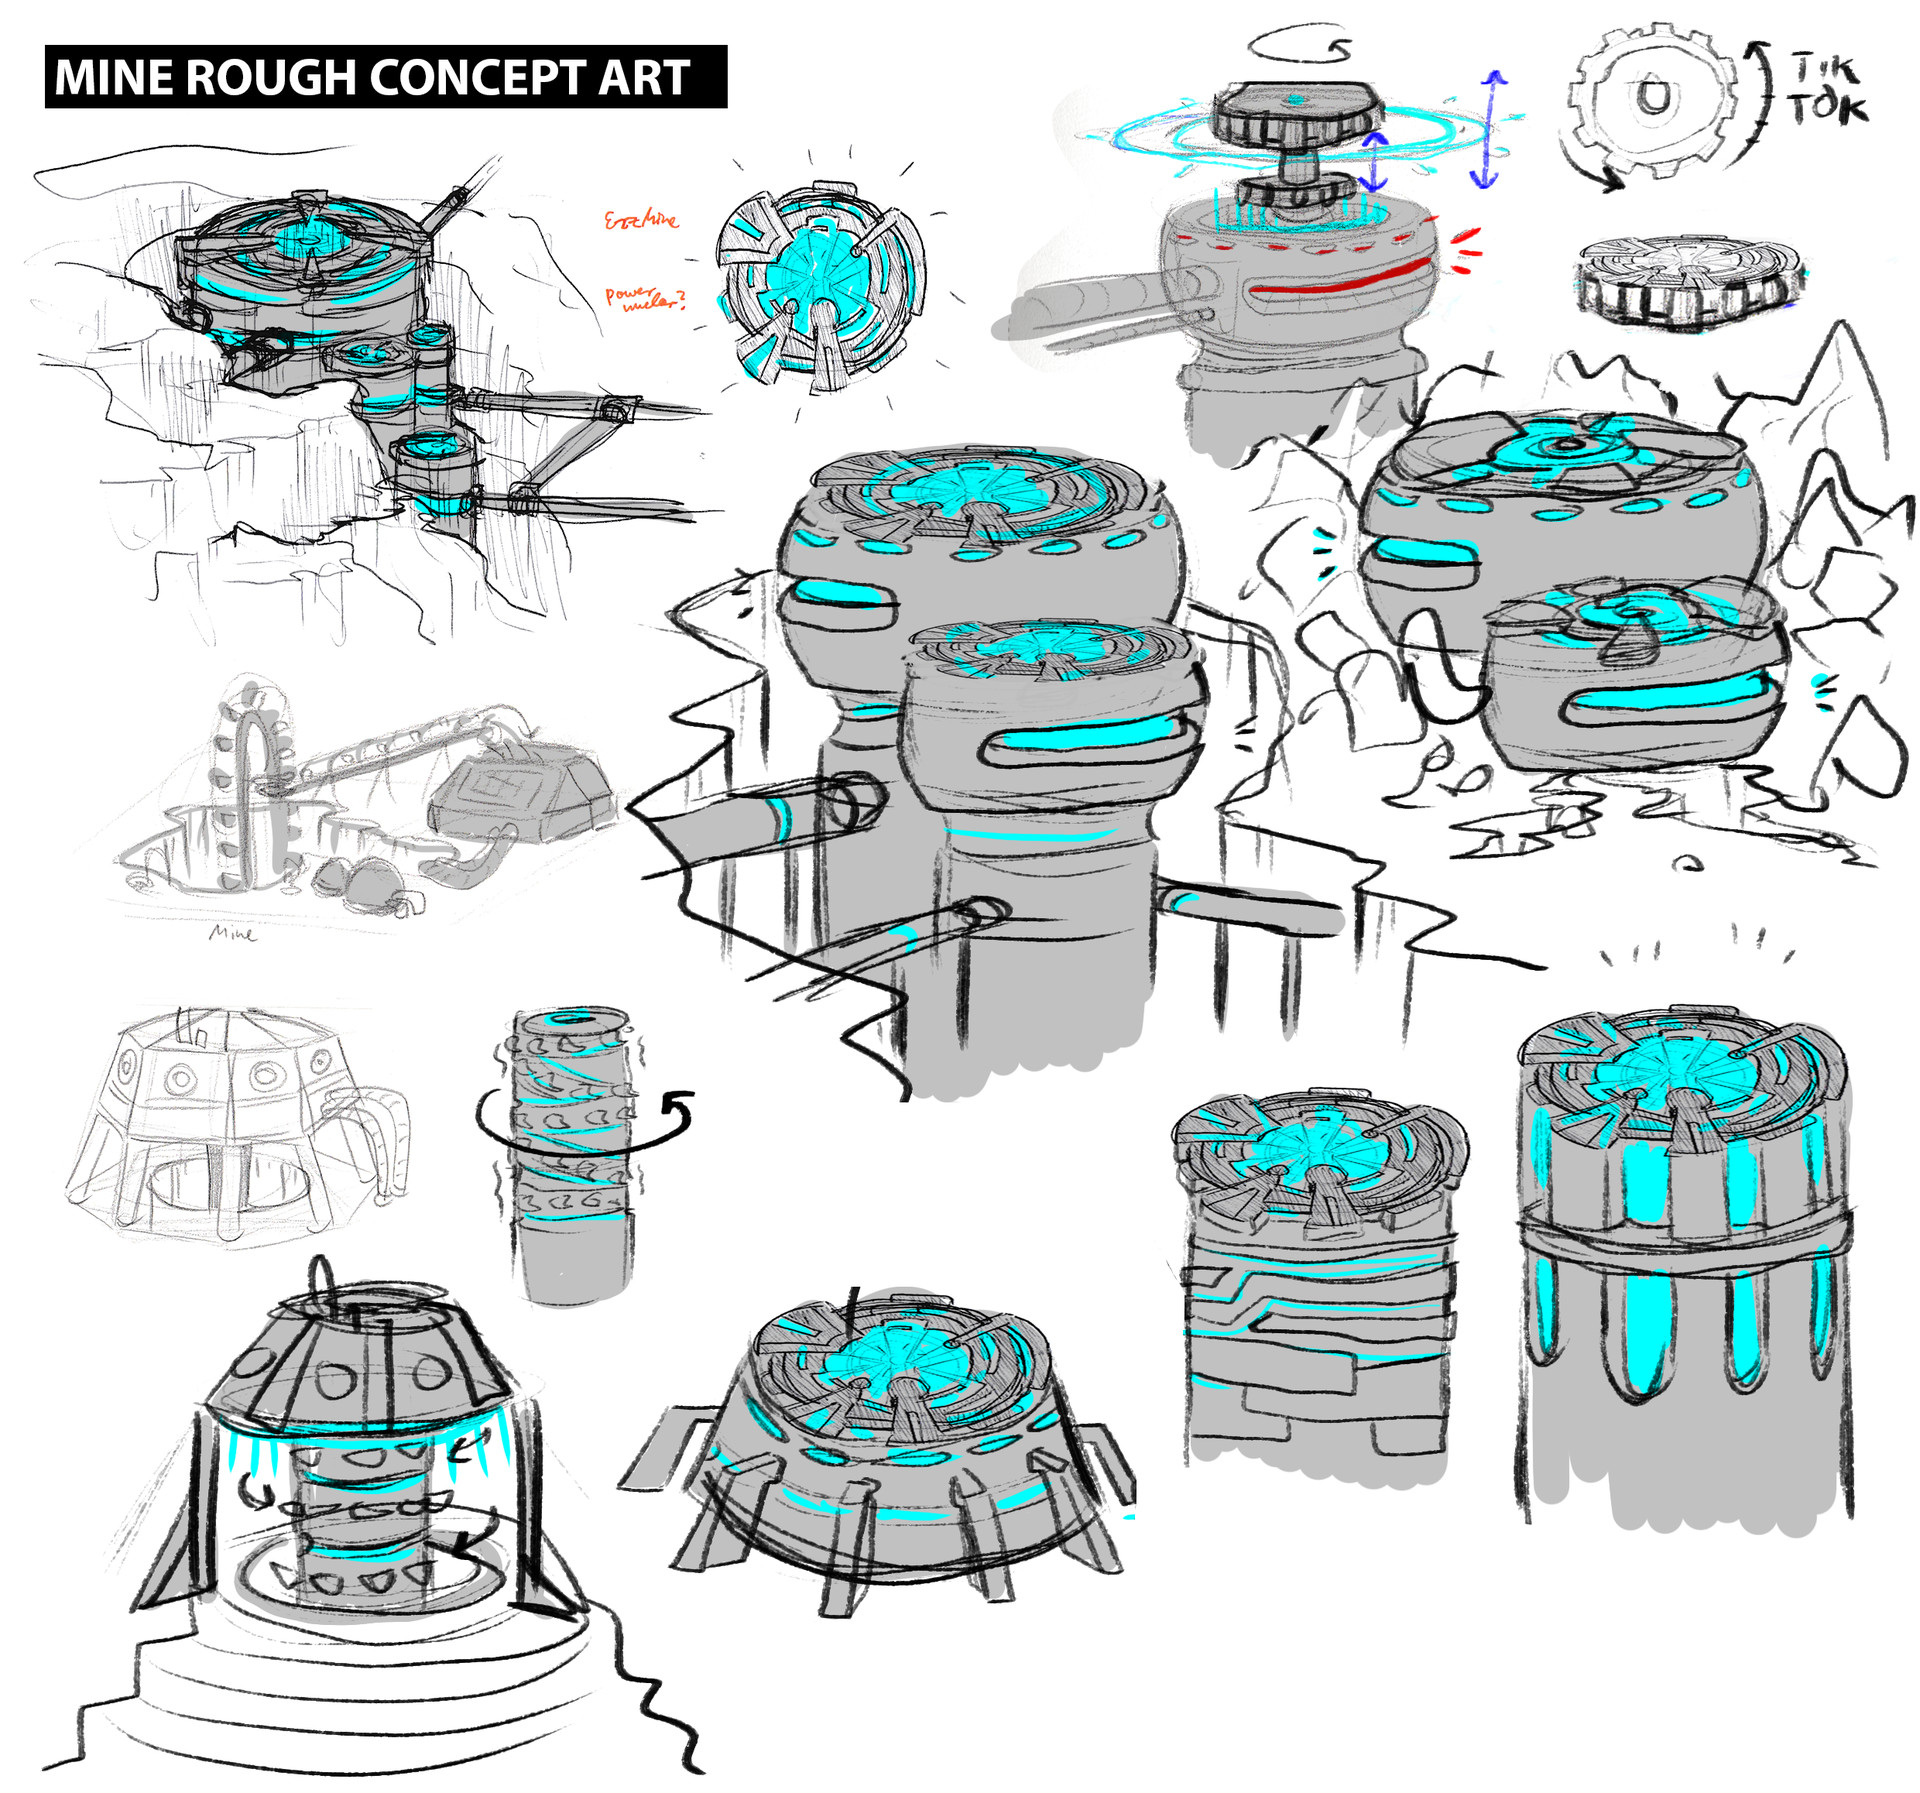 Djamacat gamesports mine rough concept art